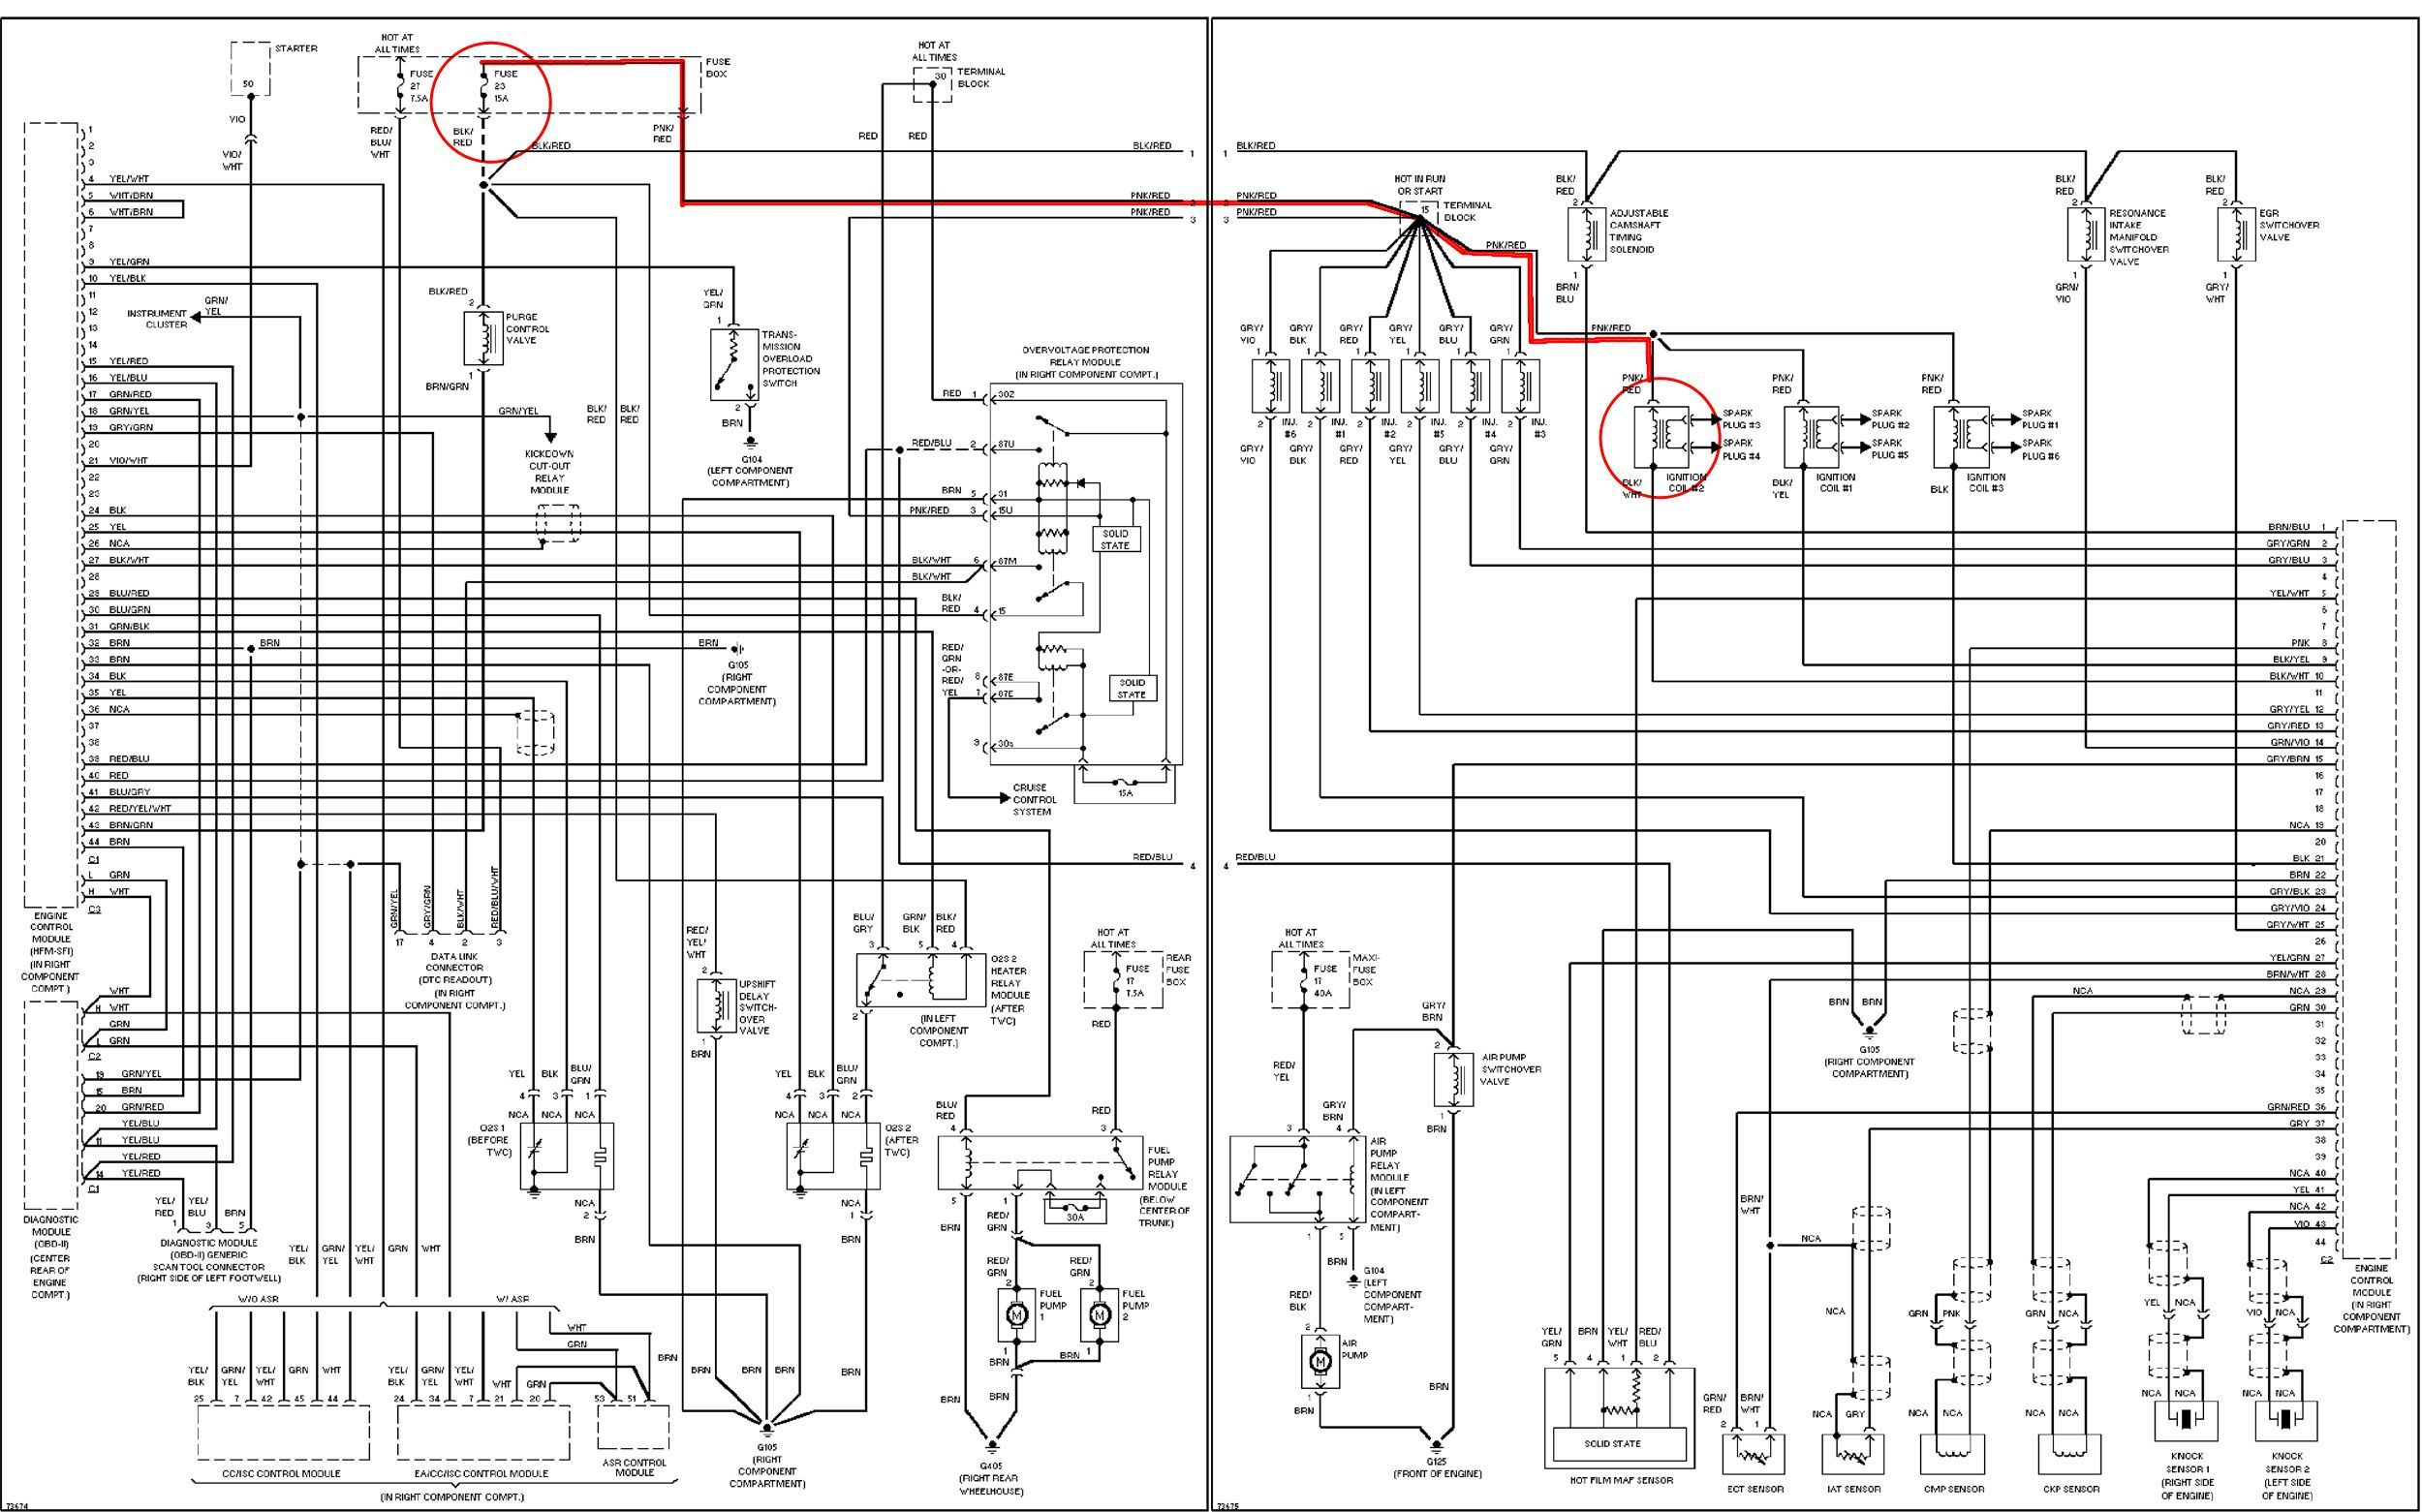 [SCHEMATICS_48IS]  Mercedes Benz C240 2003 Fuse Diagram Diagram Base Website Fuse Diagram -  VENNDIAGRAMPLATYPUS.SCARPEHOGAN--OUTLET.IT | 1999 Mercedes Benz Wiring Diagrams |  | scarpehogan--outlet